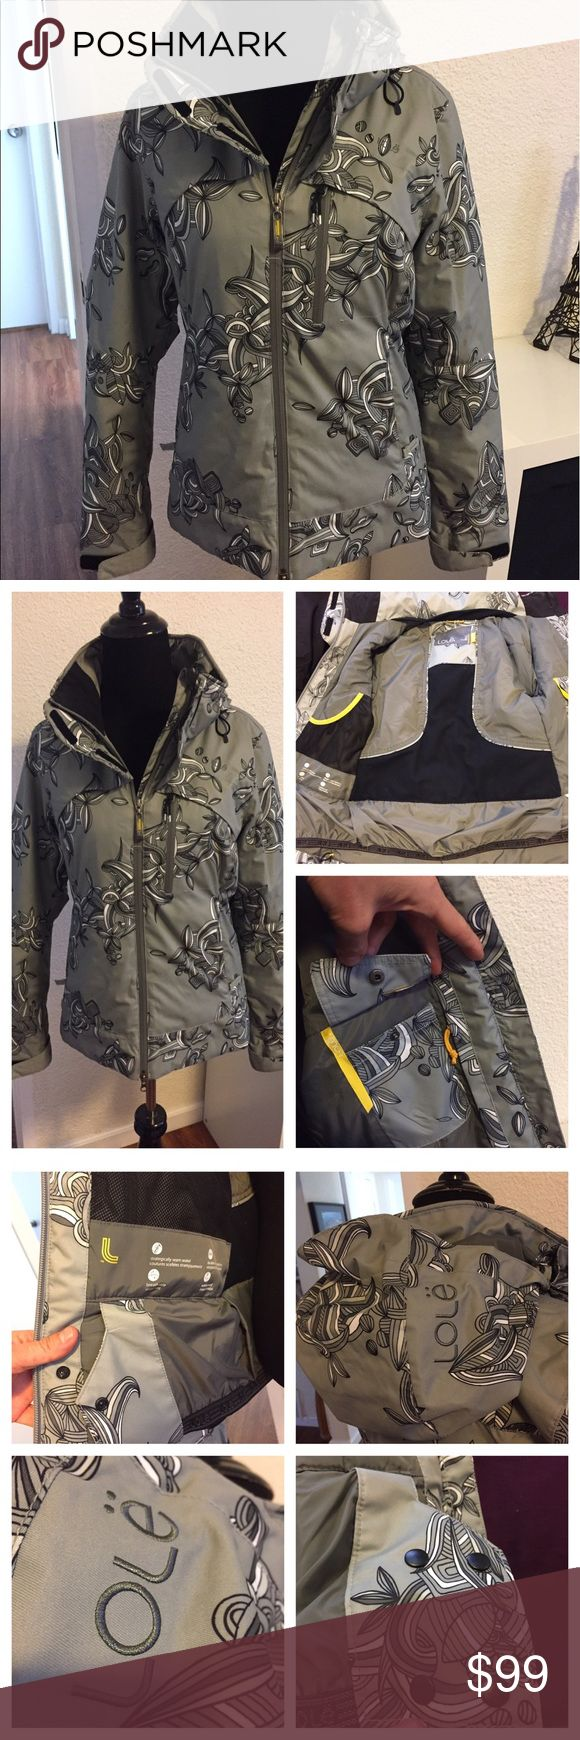 Lole Winter ski jacket. Use only one time. Great condition. Many pockets inside and outside. Lole Jackets & Coats Utility Jackets